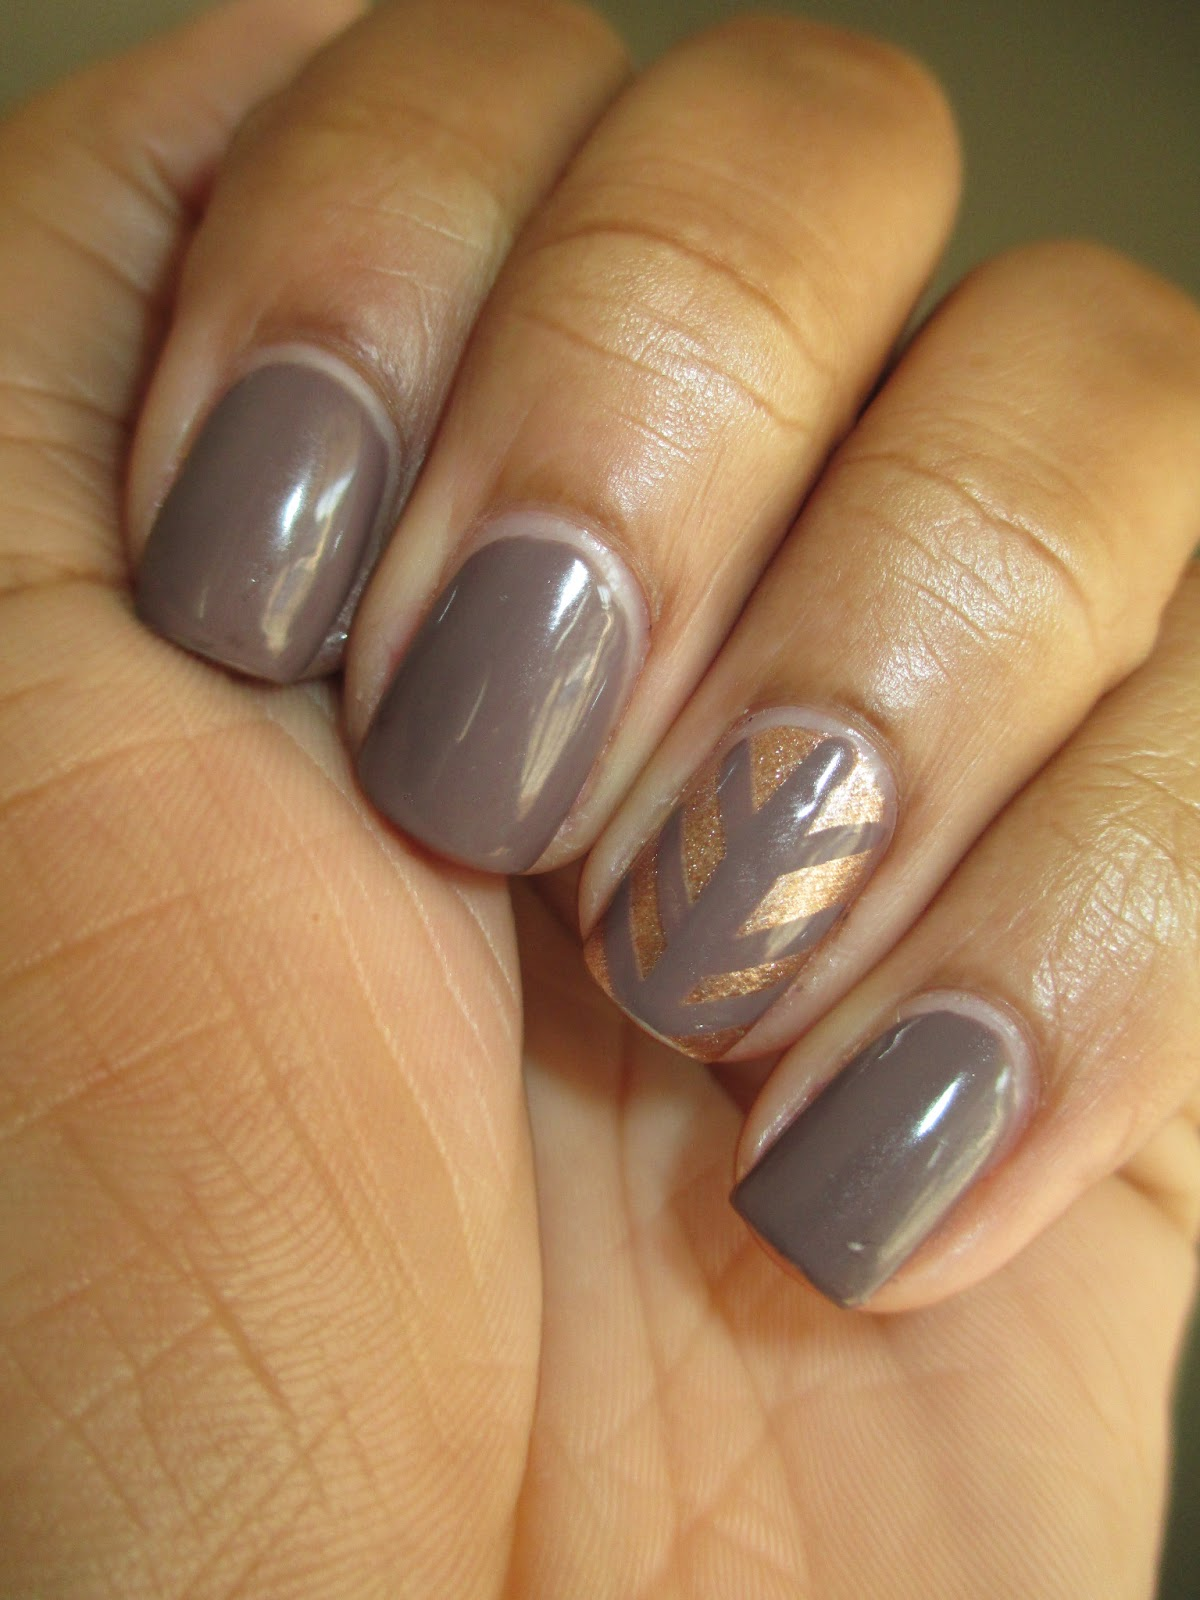 Fairly Charming: Chruch Mani: Taupe of the World!